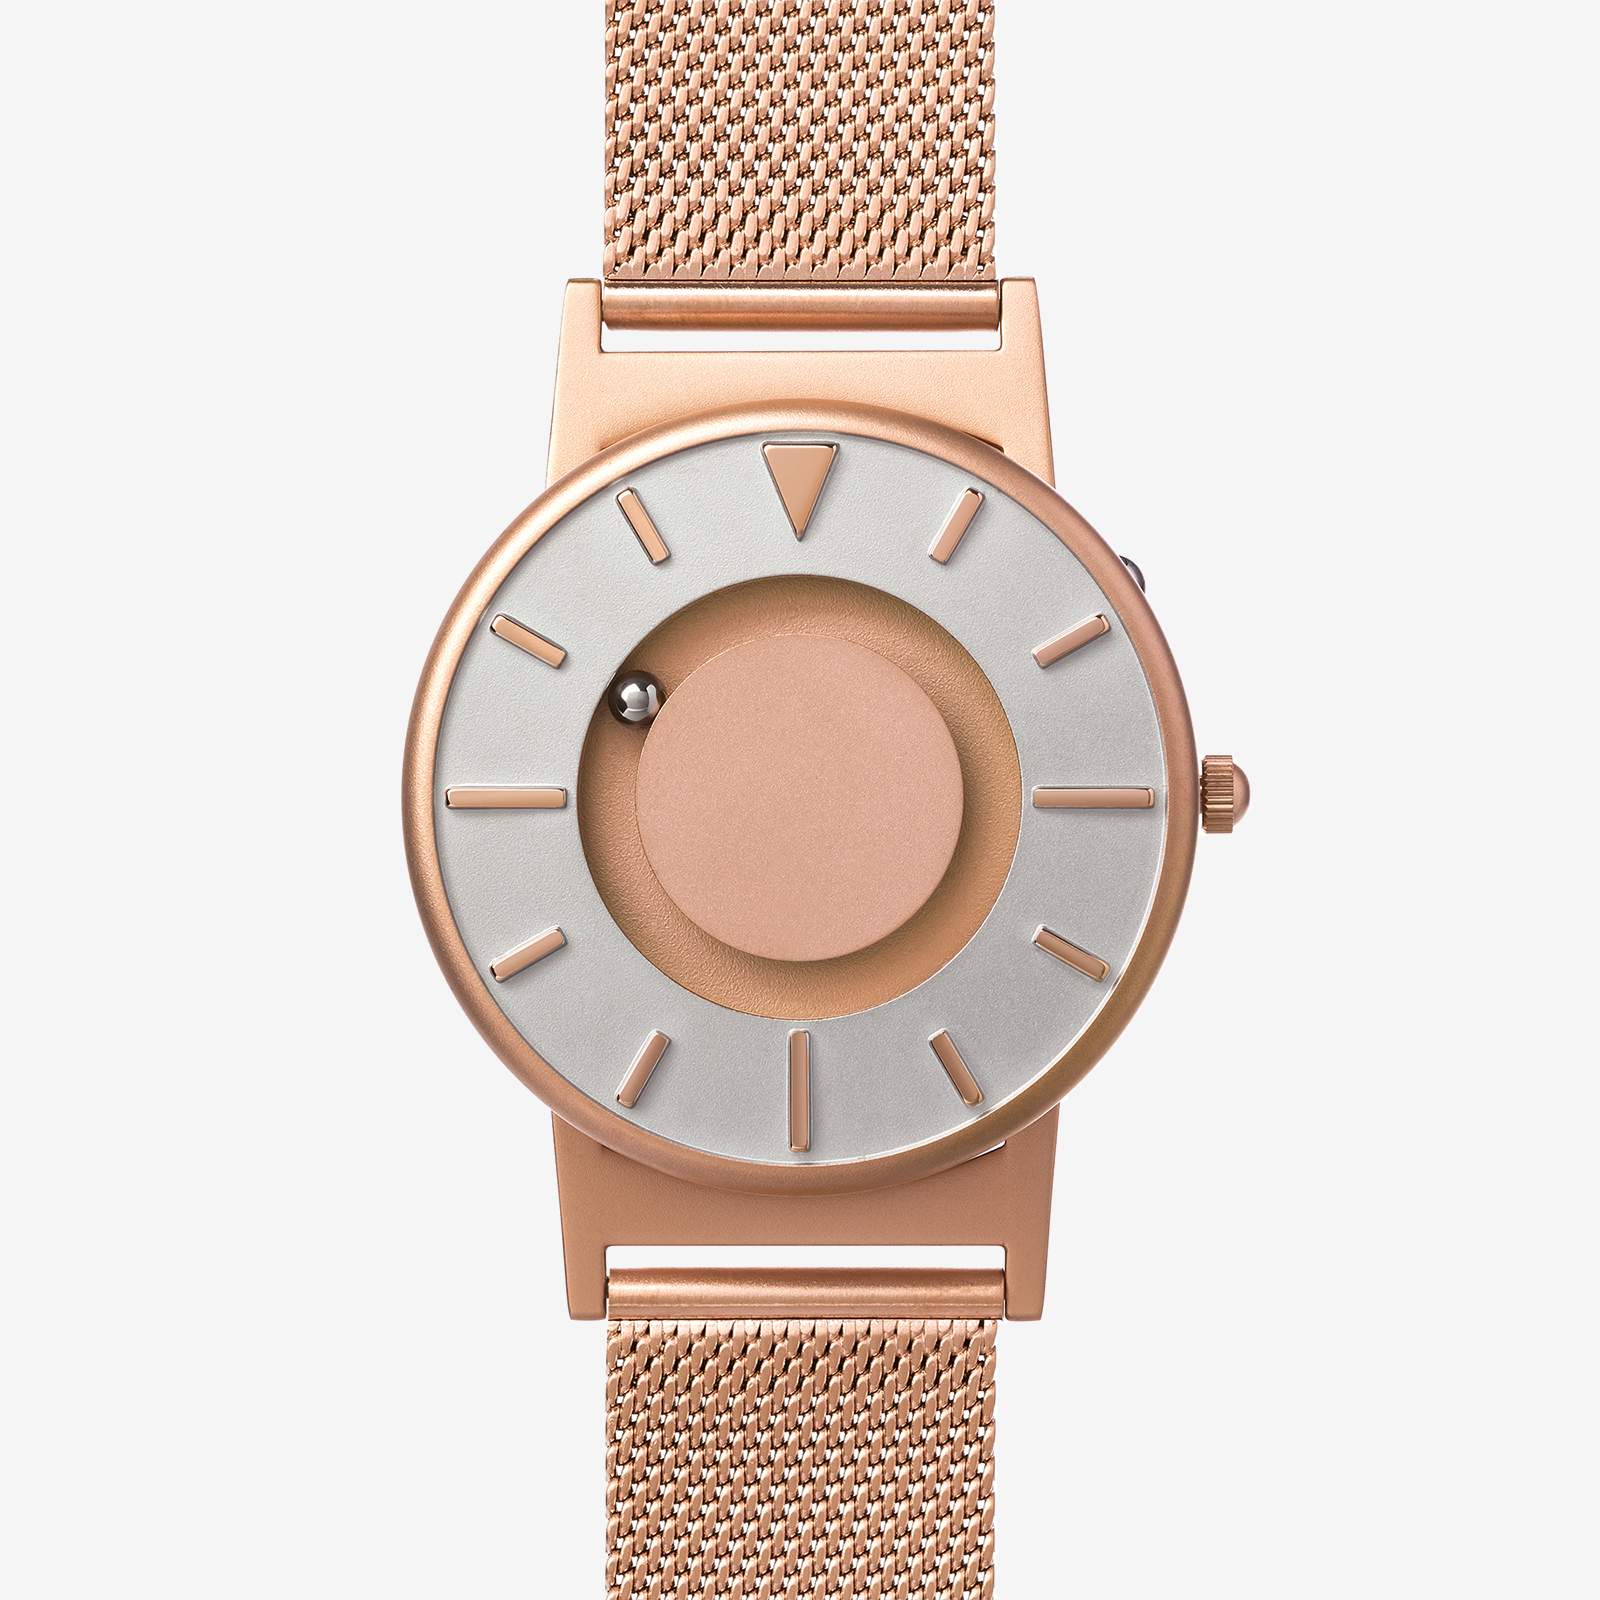 Rose gold watch product photography